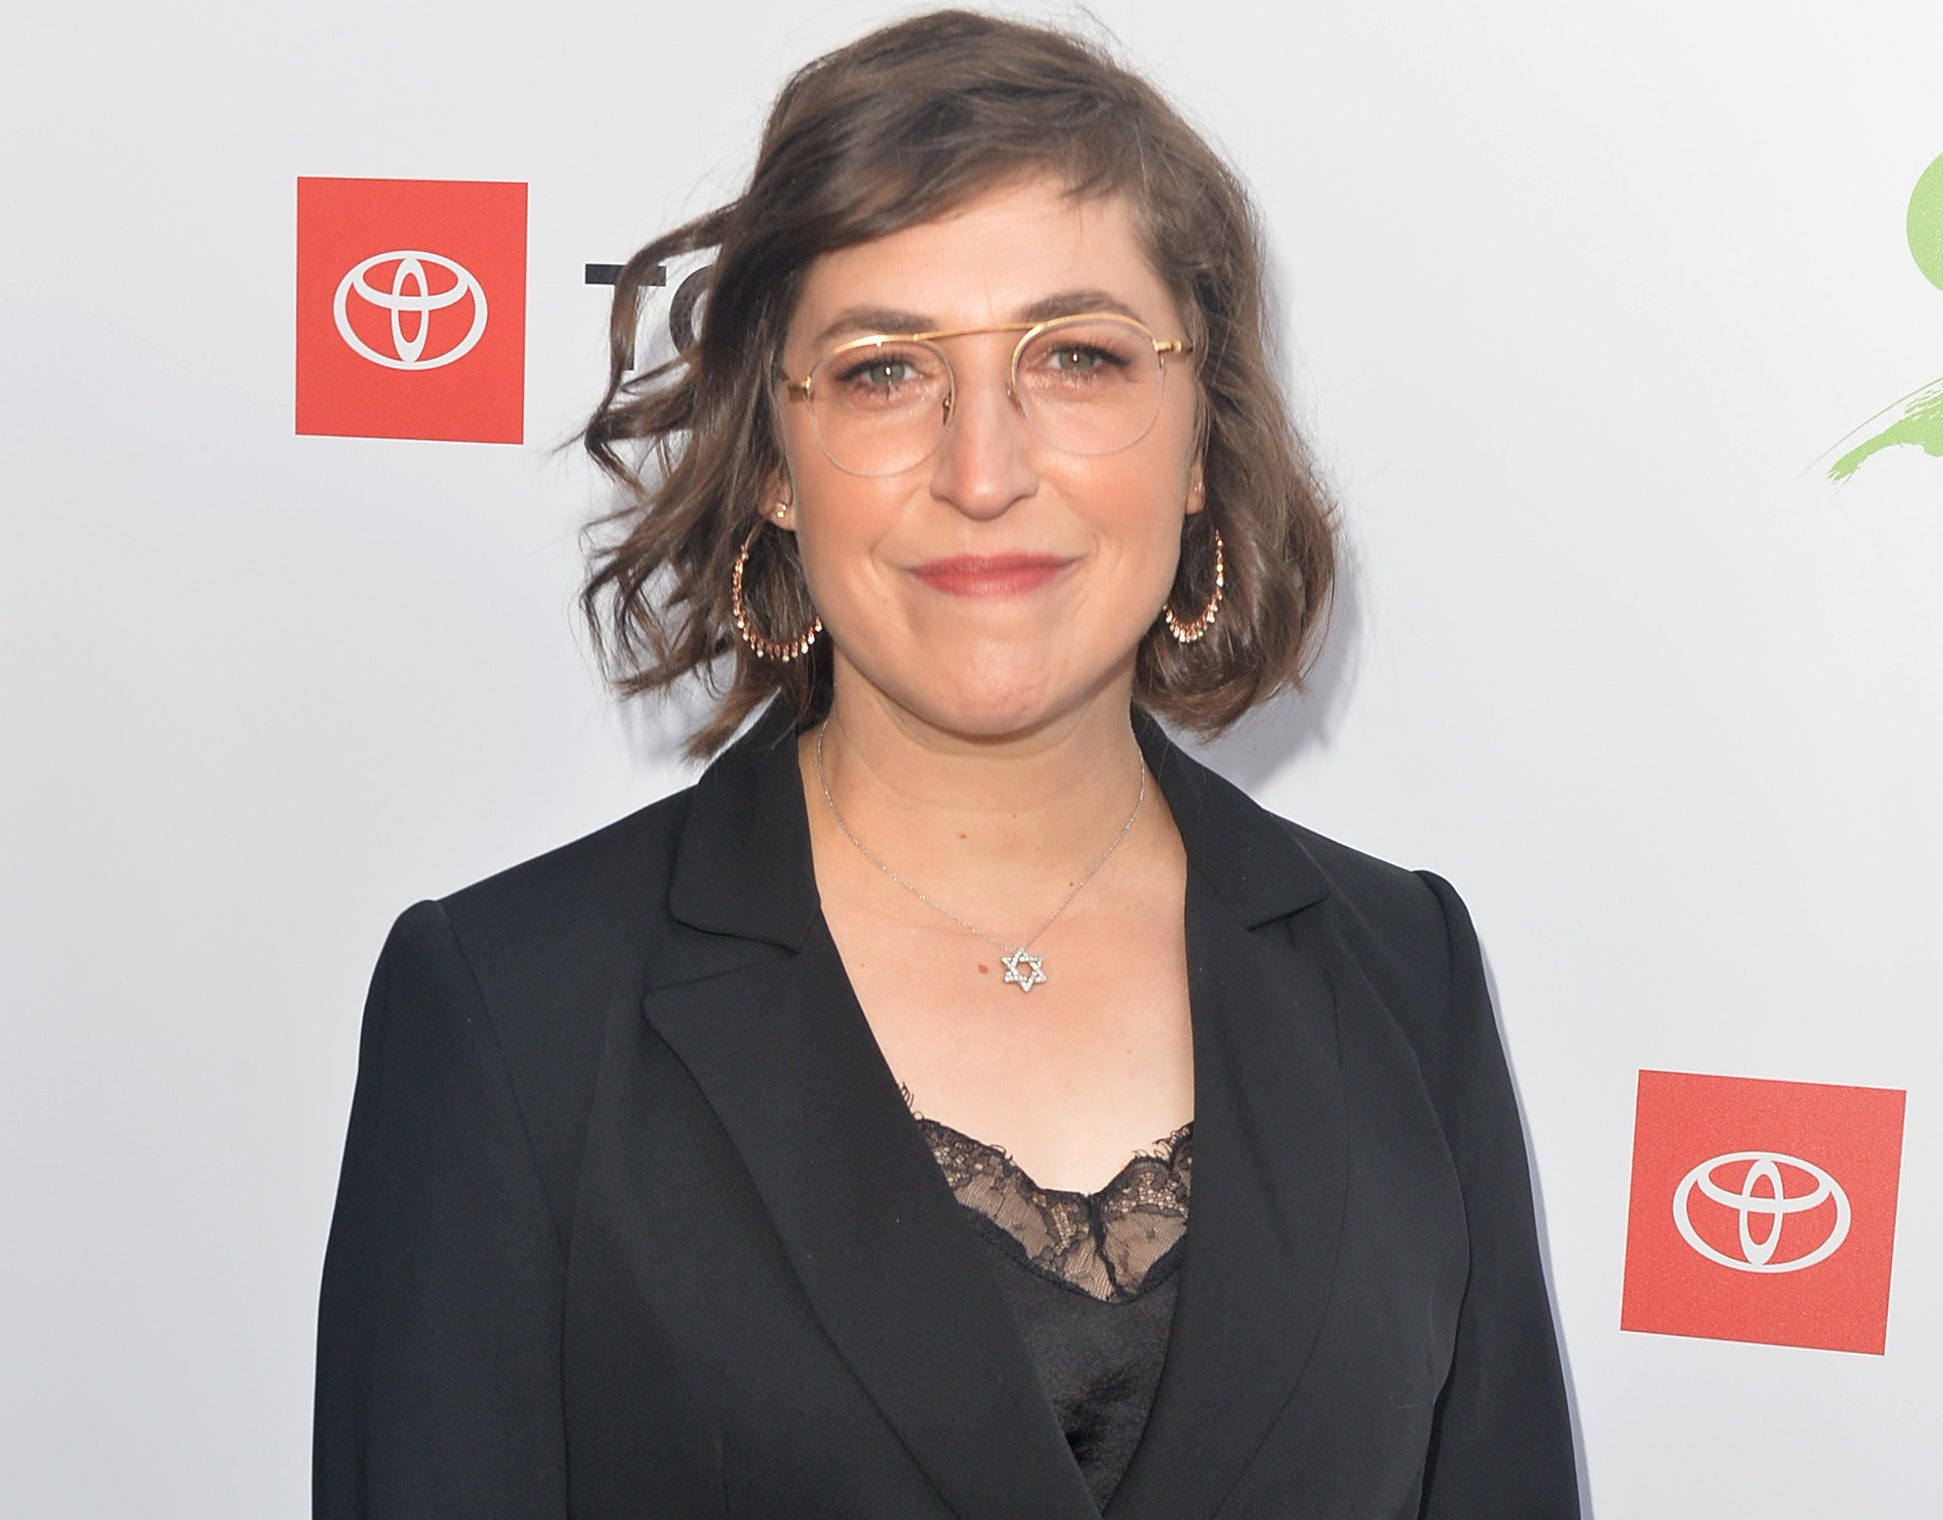 Mayim wears glasses and a suit jacket at an event